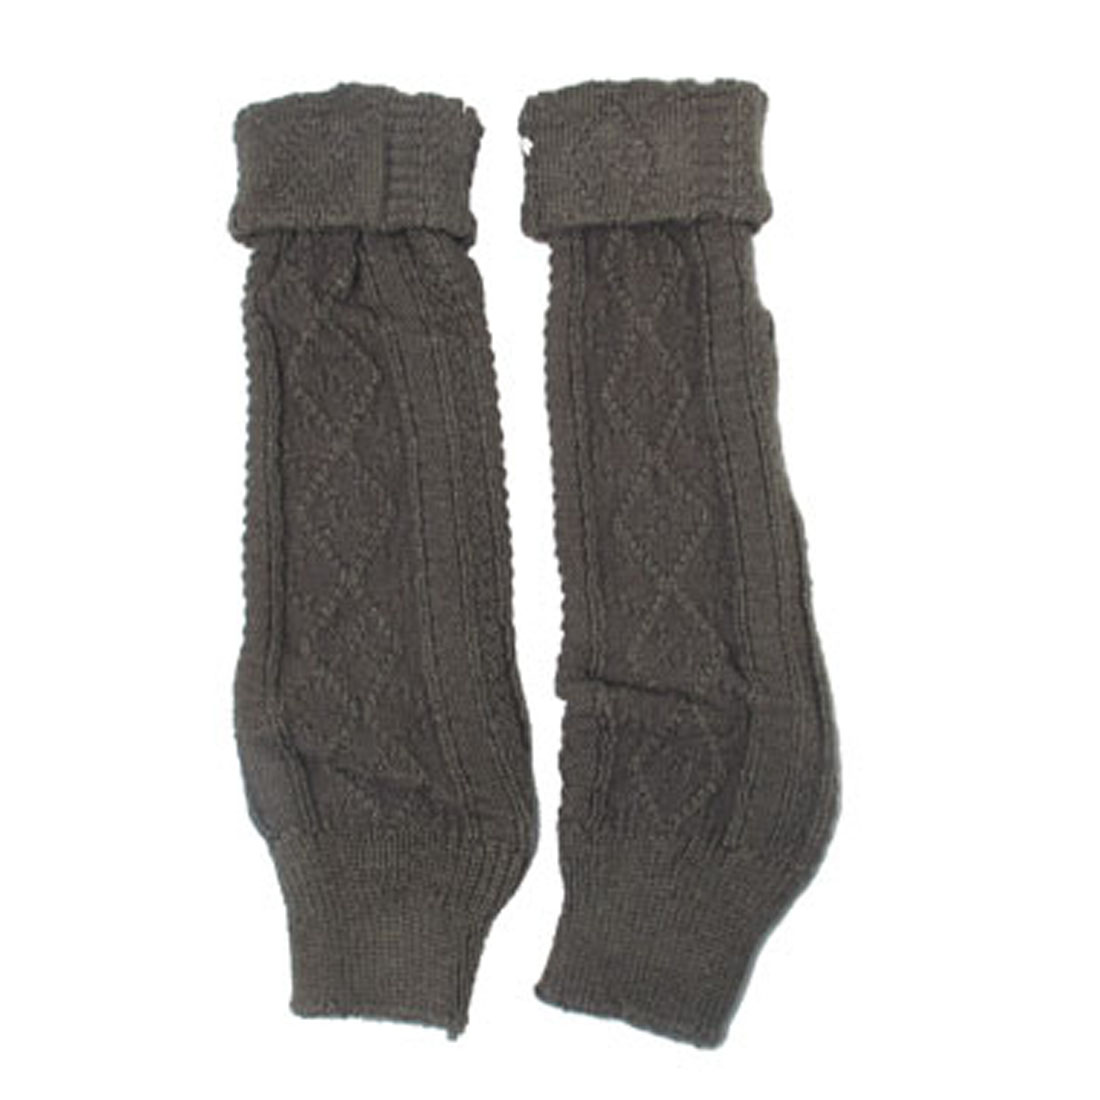 Pair Rhombus Pattern Knitted Knee High Leg Warmers Taupe for Women